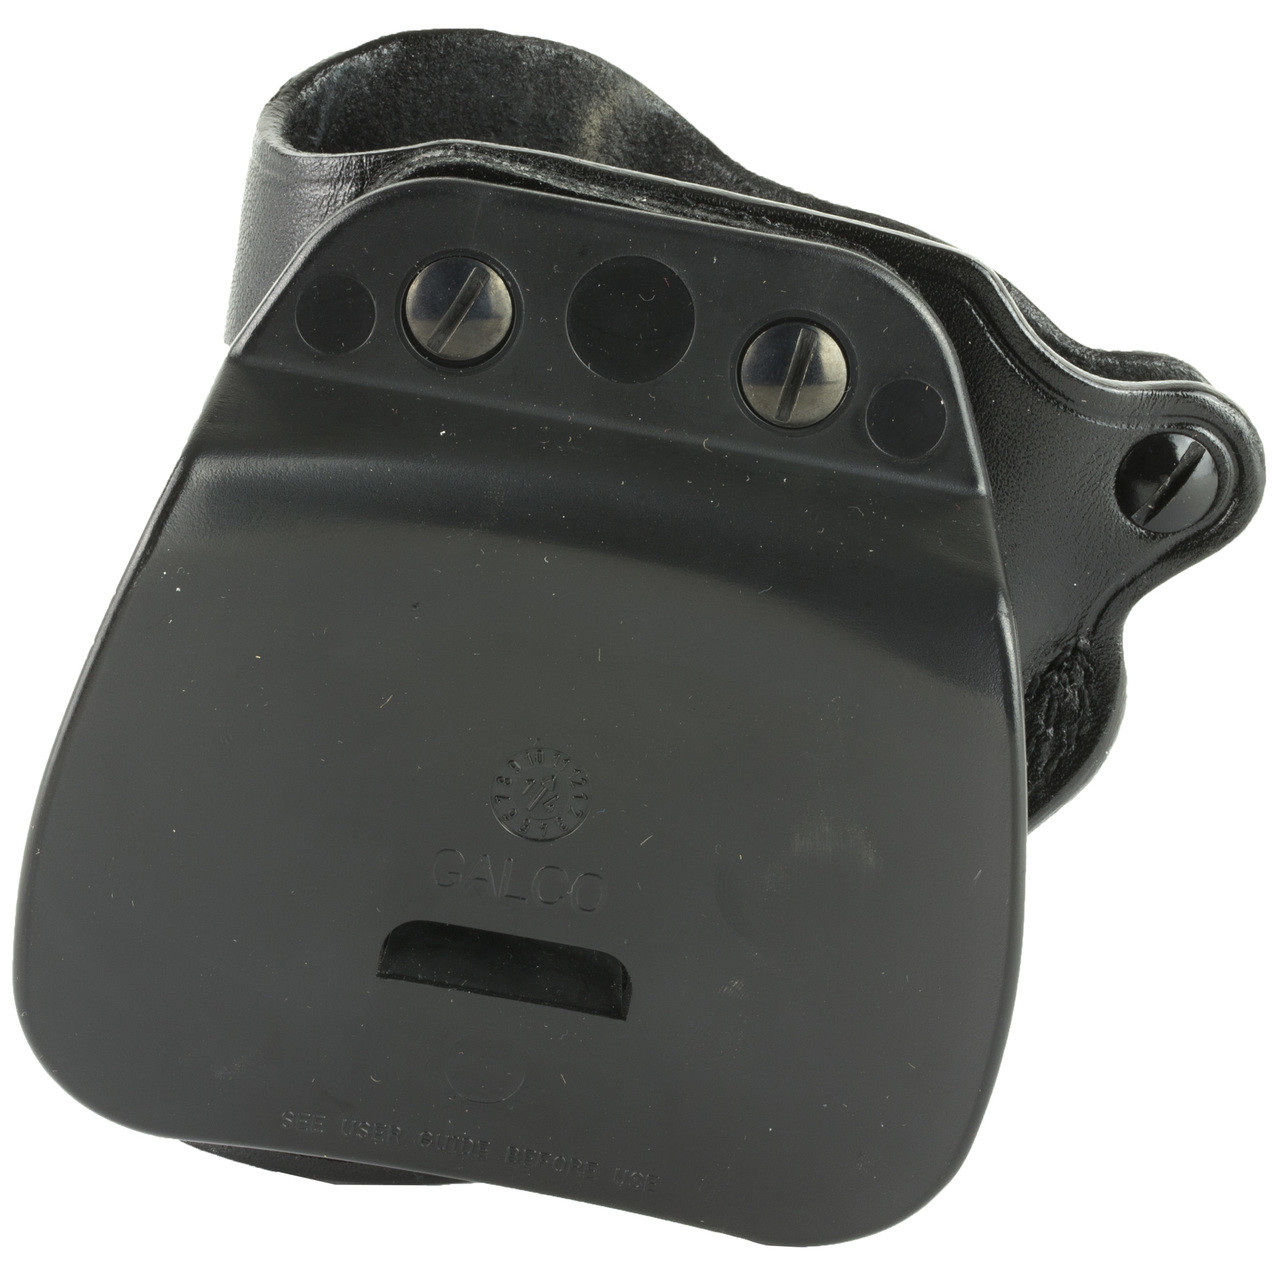 Galco Speed Paddle Holster, Fits Ruger LCR, Right Hand, Black Leather  SPD300B, UPC :601299128217